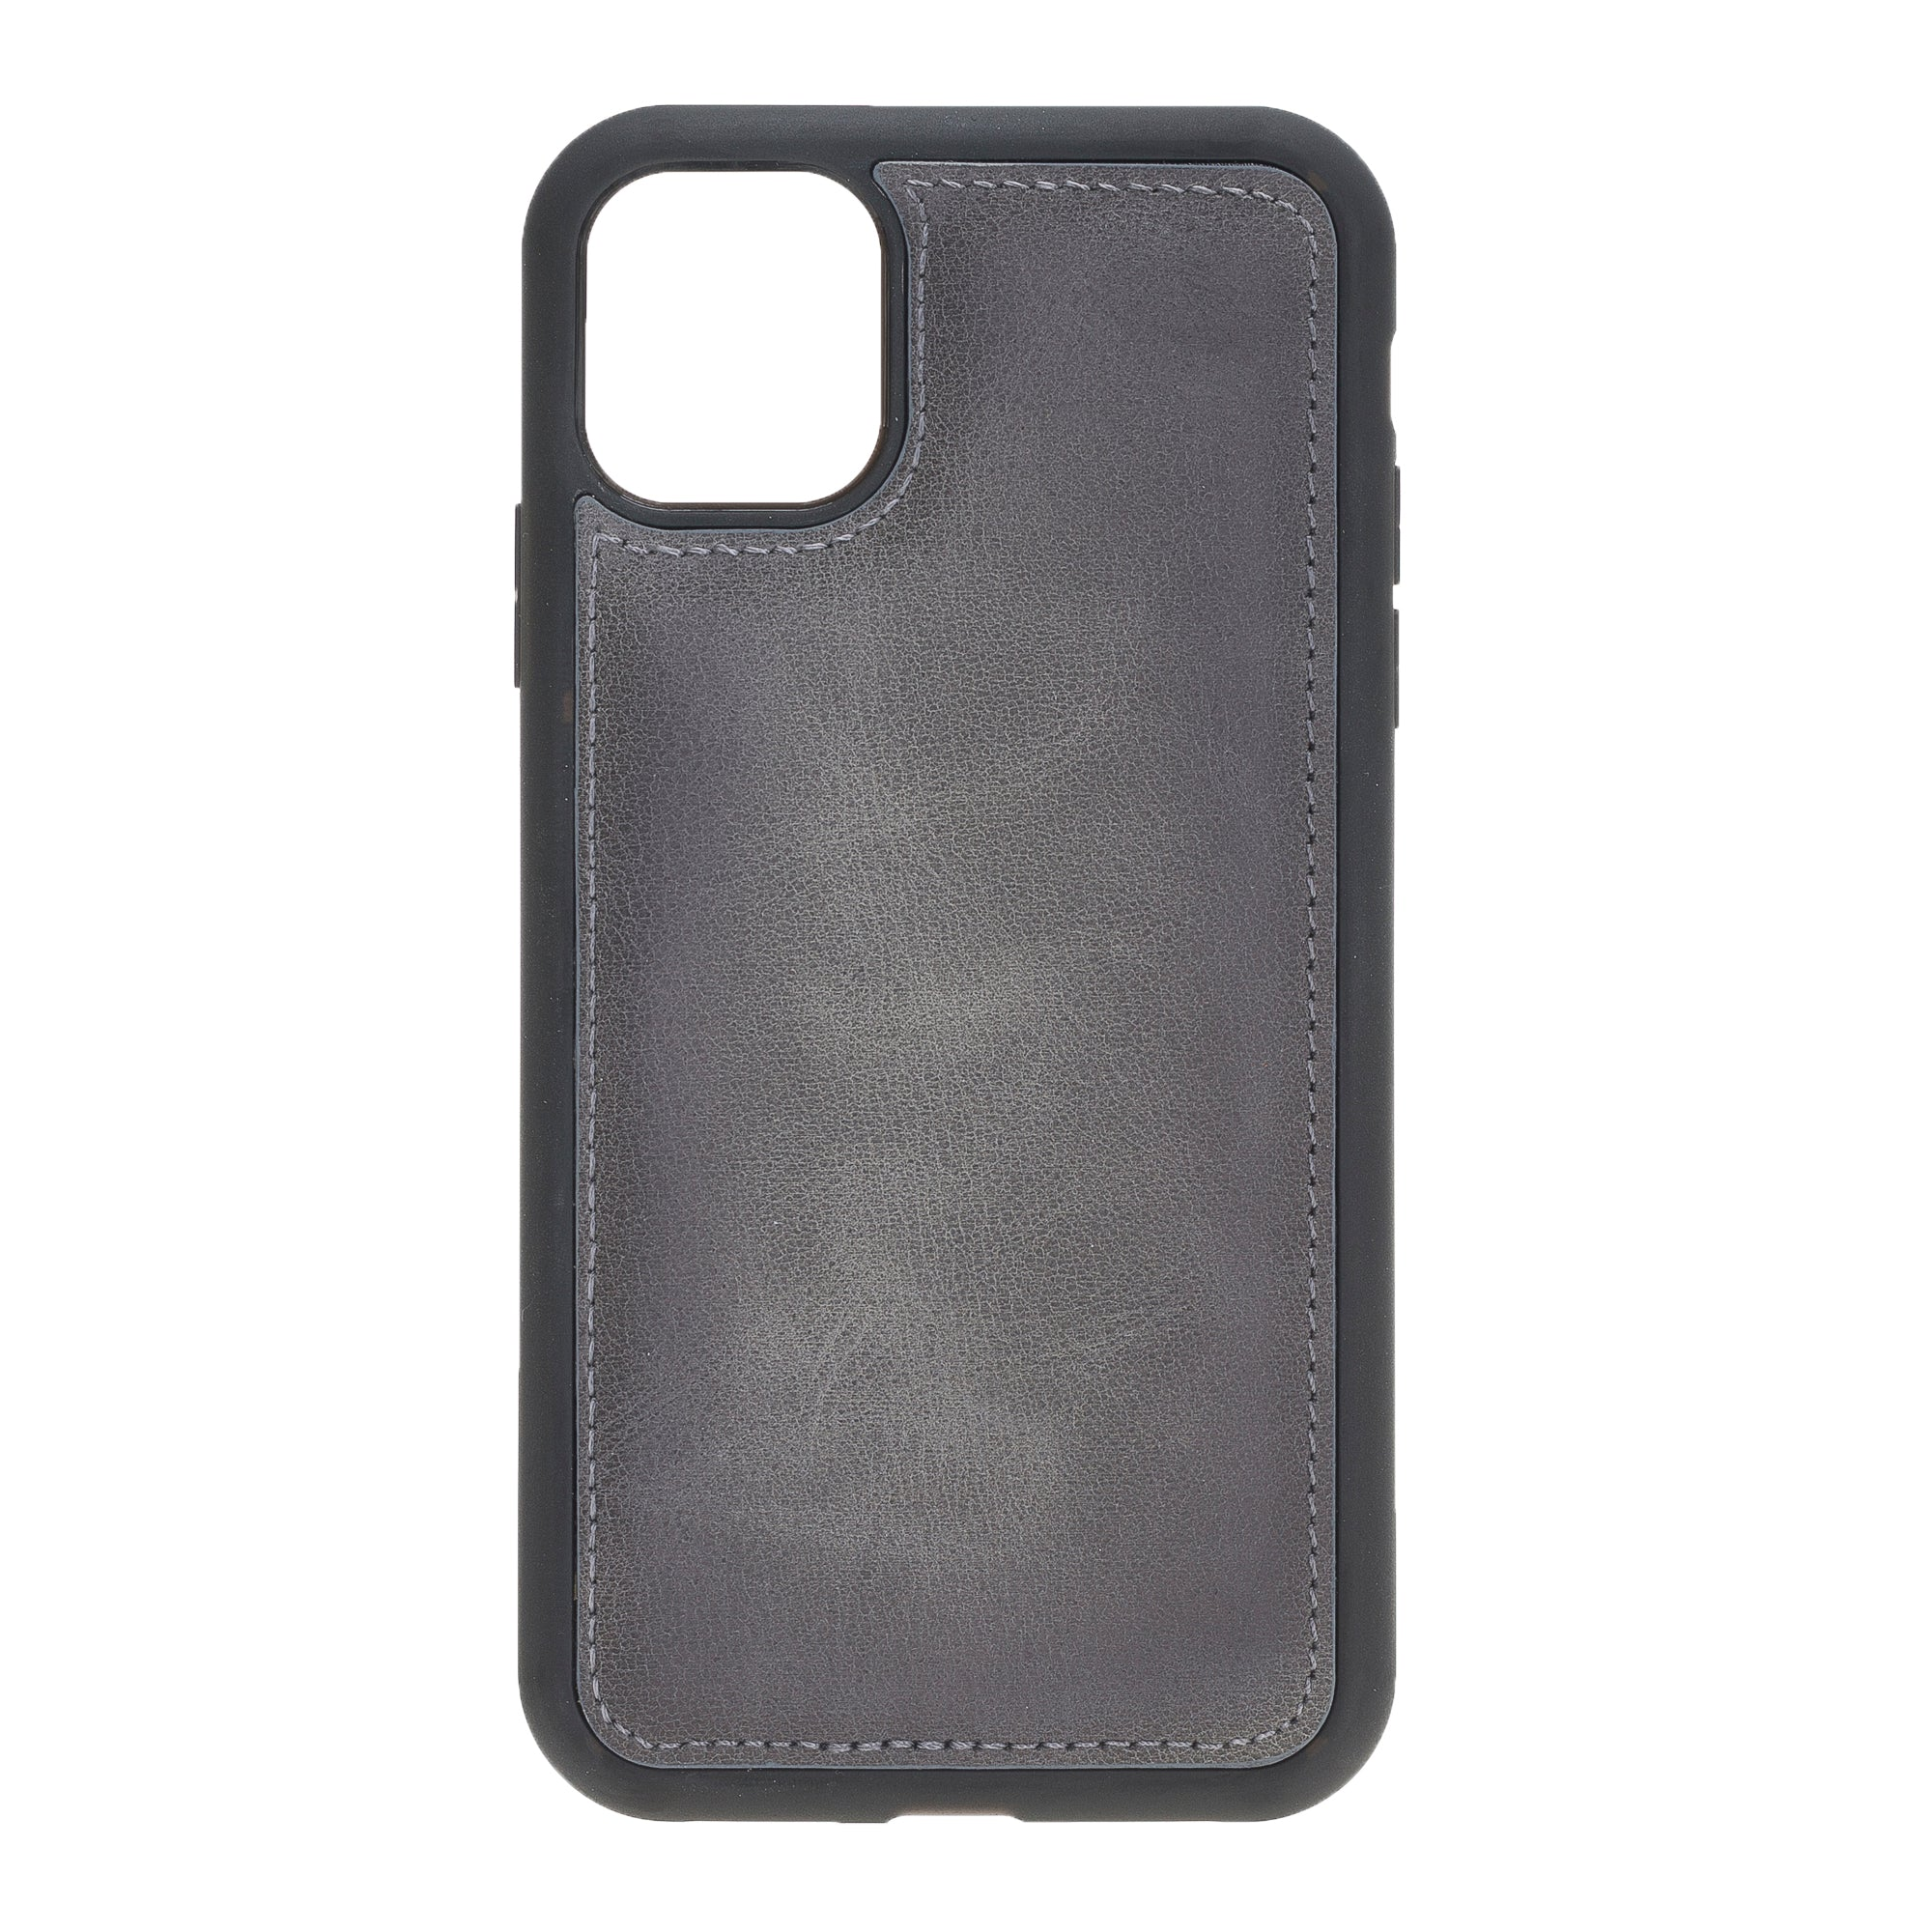 "Marble Gray Apple iPhone 11 PRO MAX (6.5"") Leather Case"